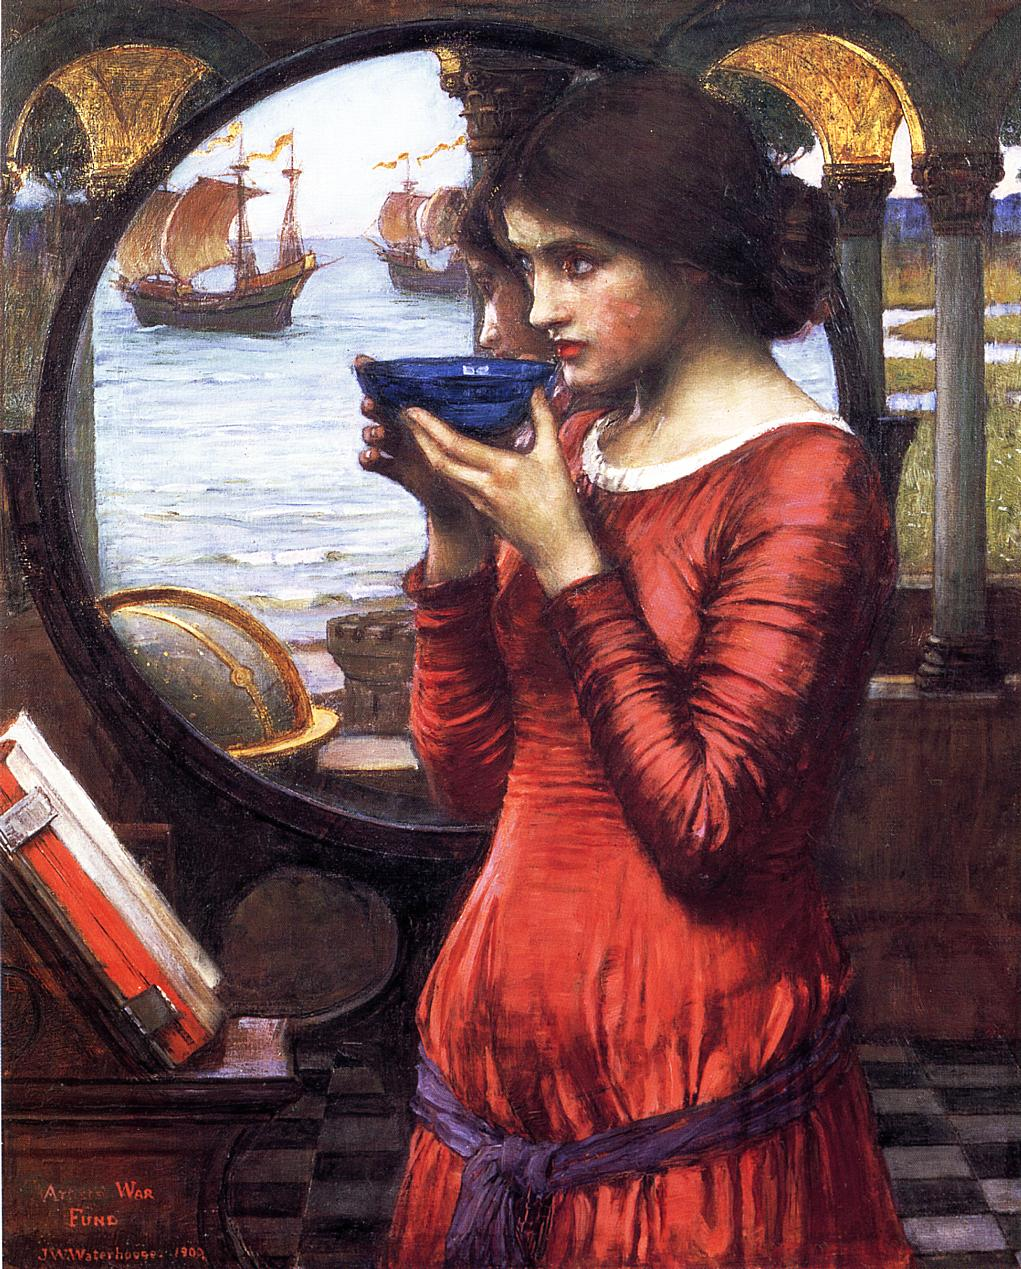 File:Destiny - John William Waterhouse.jpg